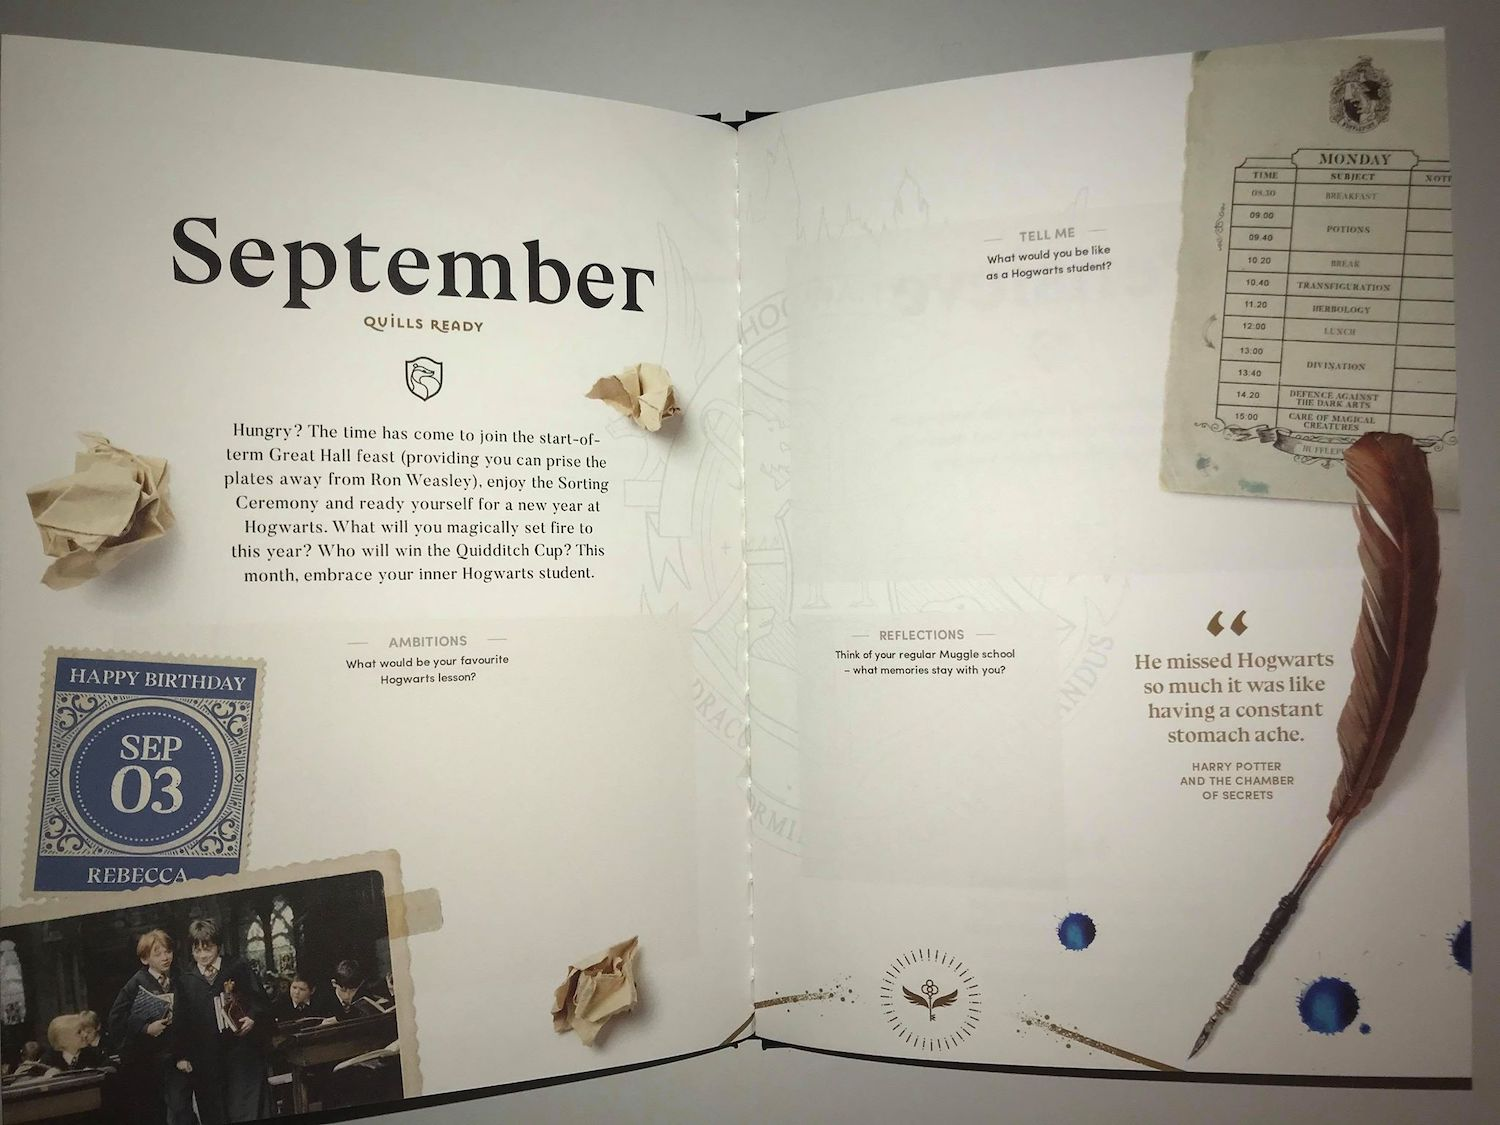 September's theme brings us back home to Hogwarts, inviting us to imagine what it would be like if we attended.